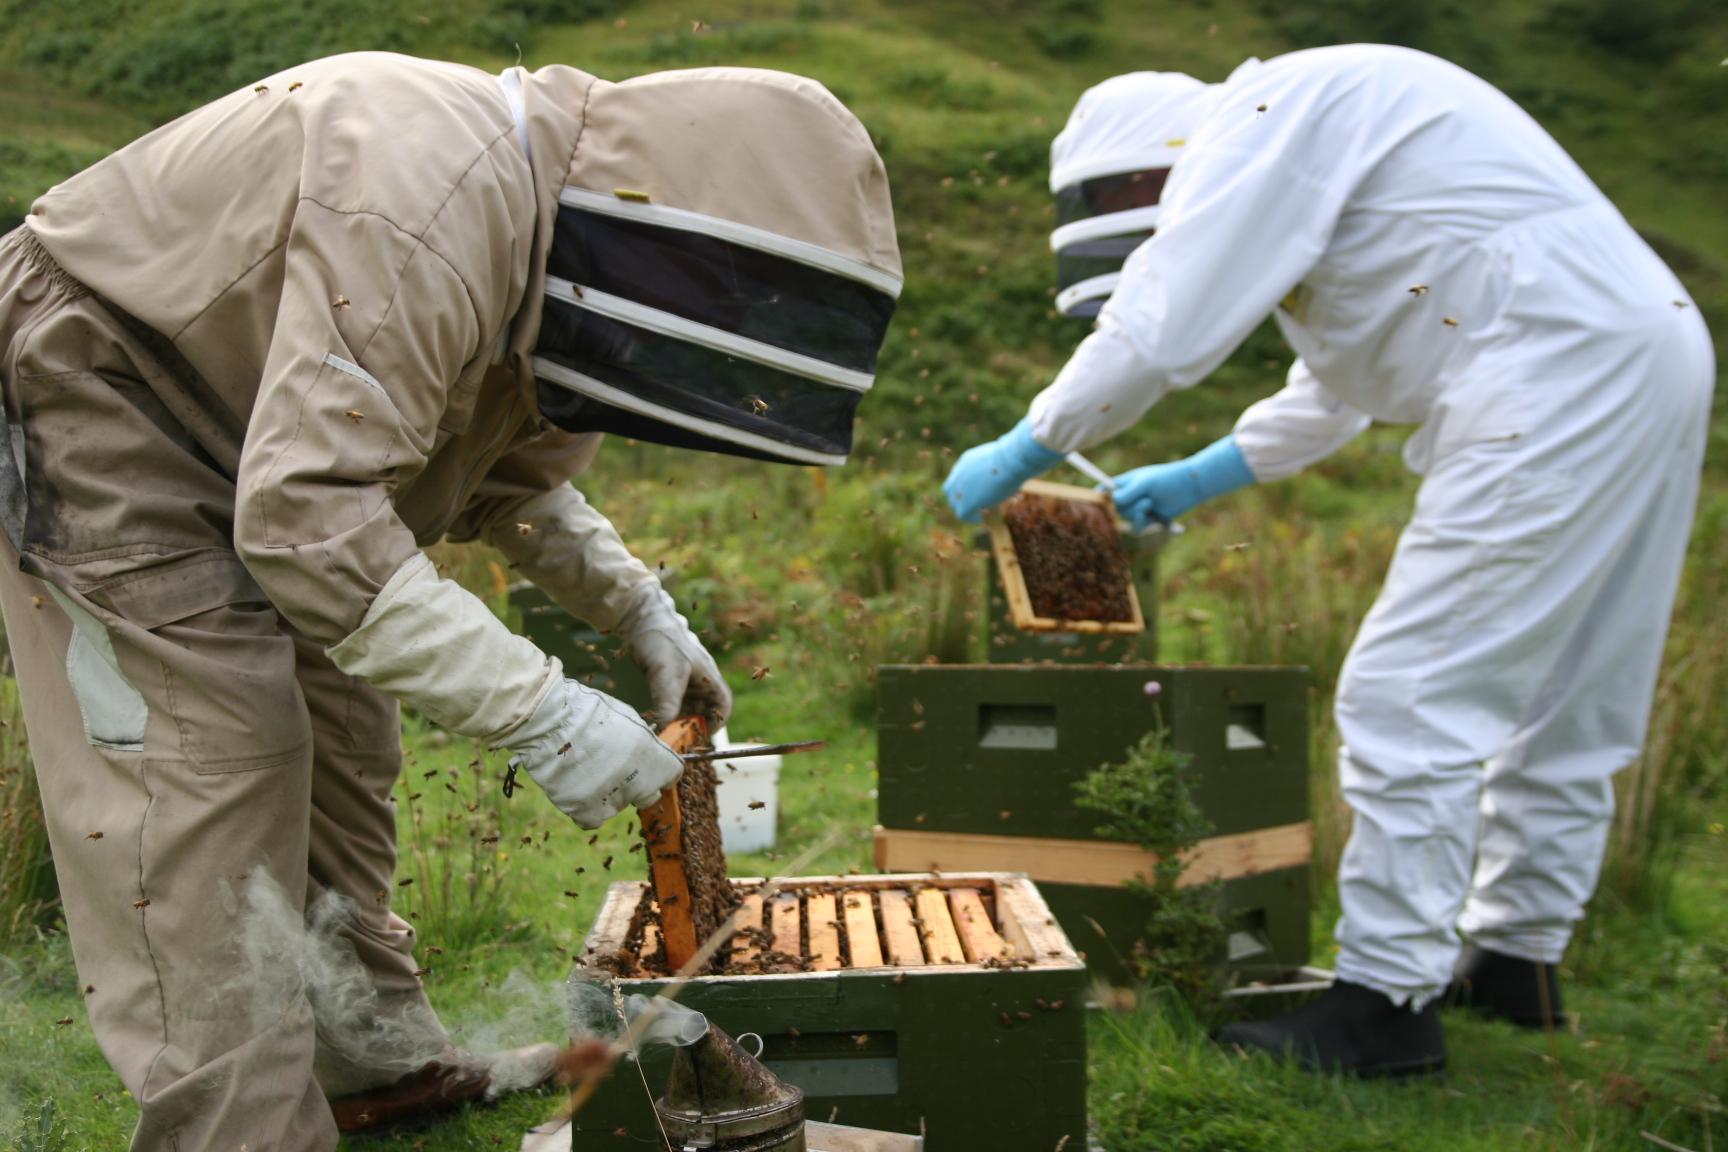 Beekeepers at work - You could try it out yourself